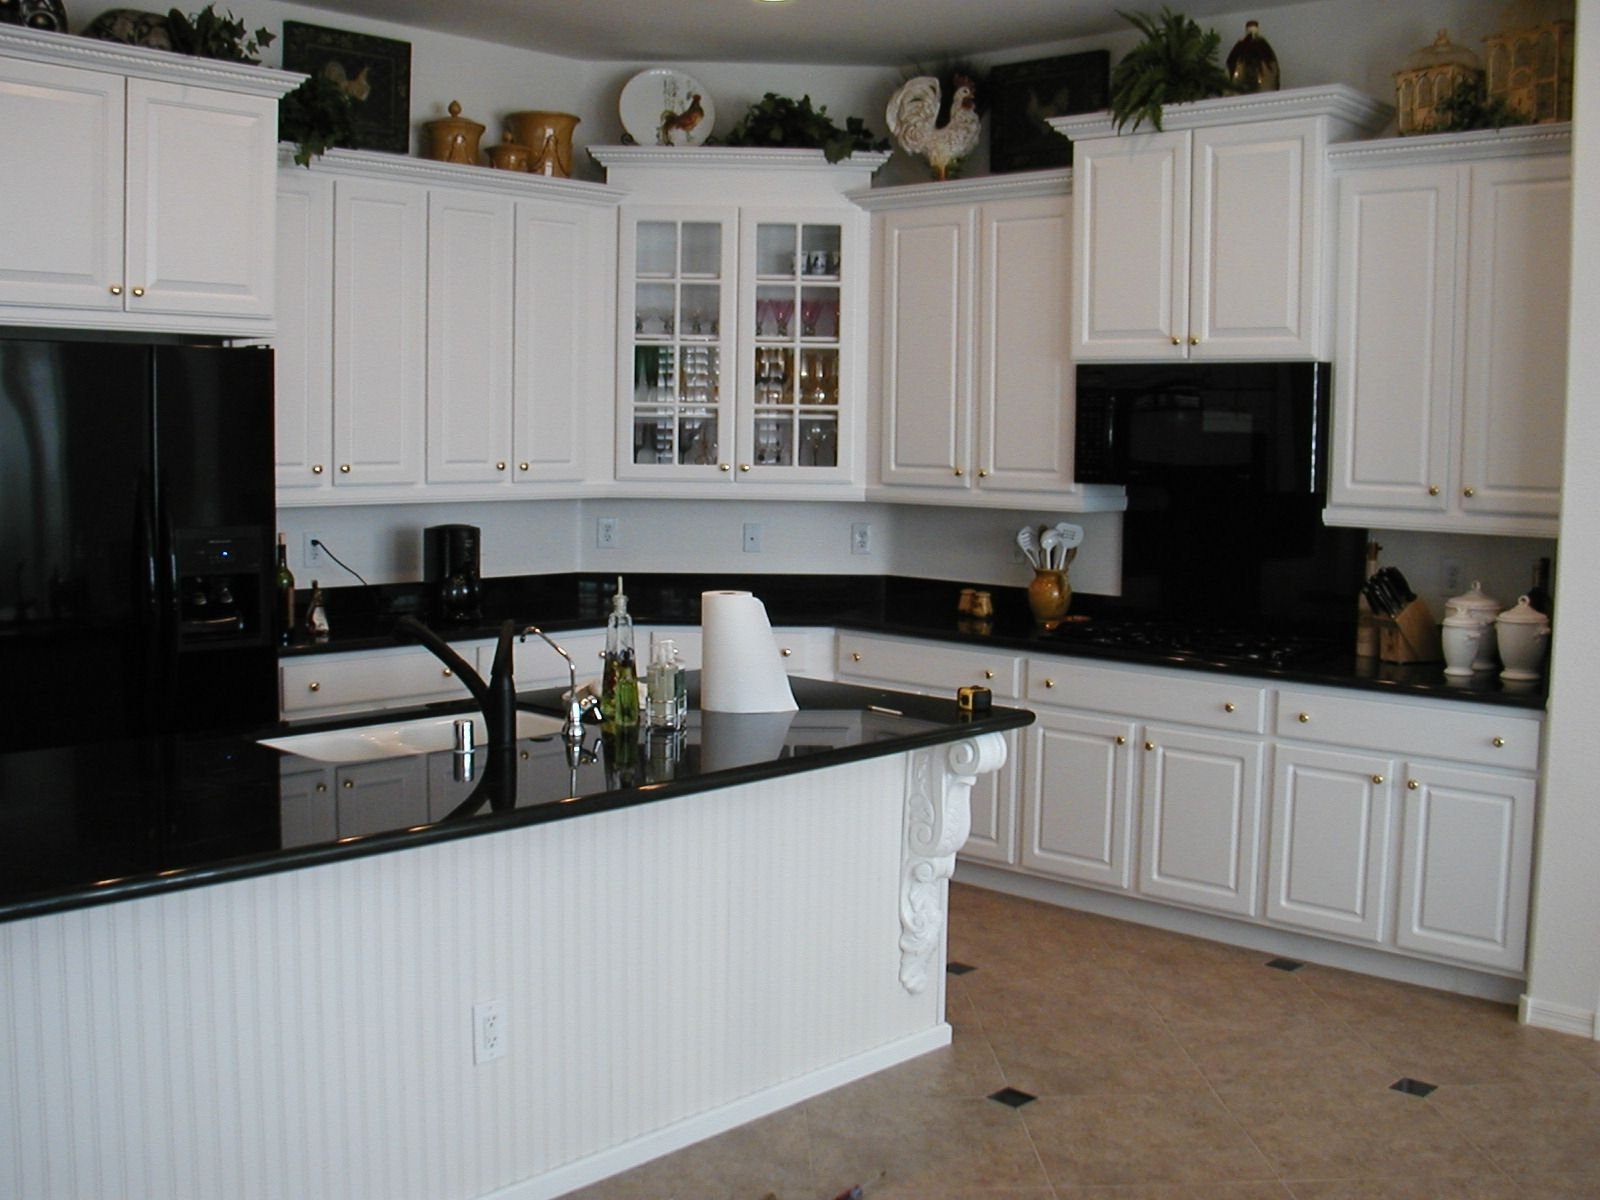 Dark Kitchen Countertops With White Cabinetswhite cabinet and beadboard island kitchen backsplash ideas for